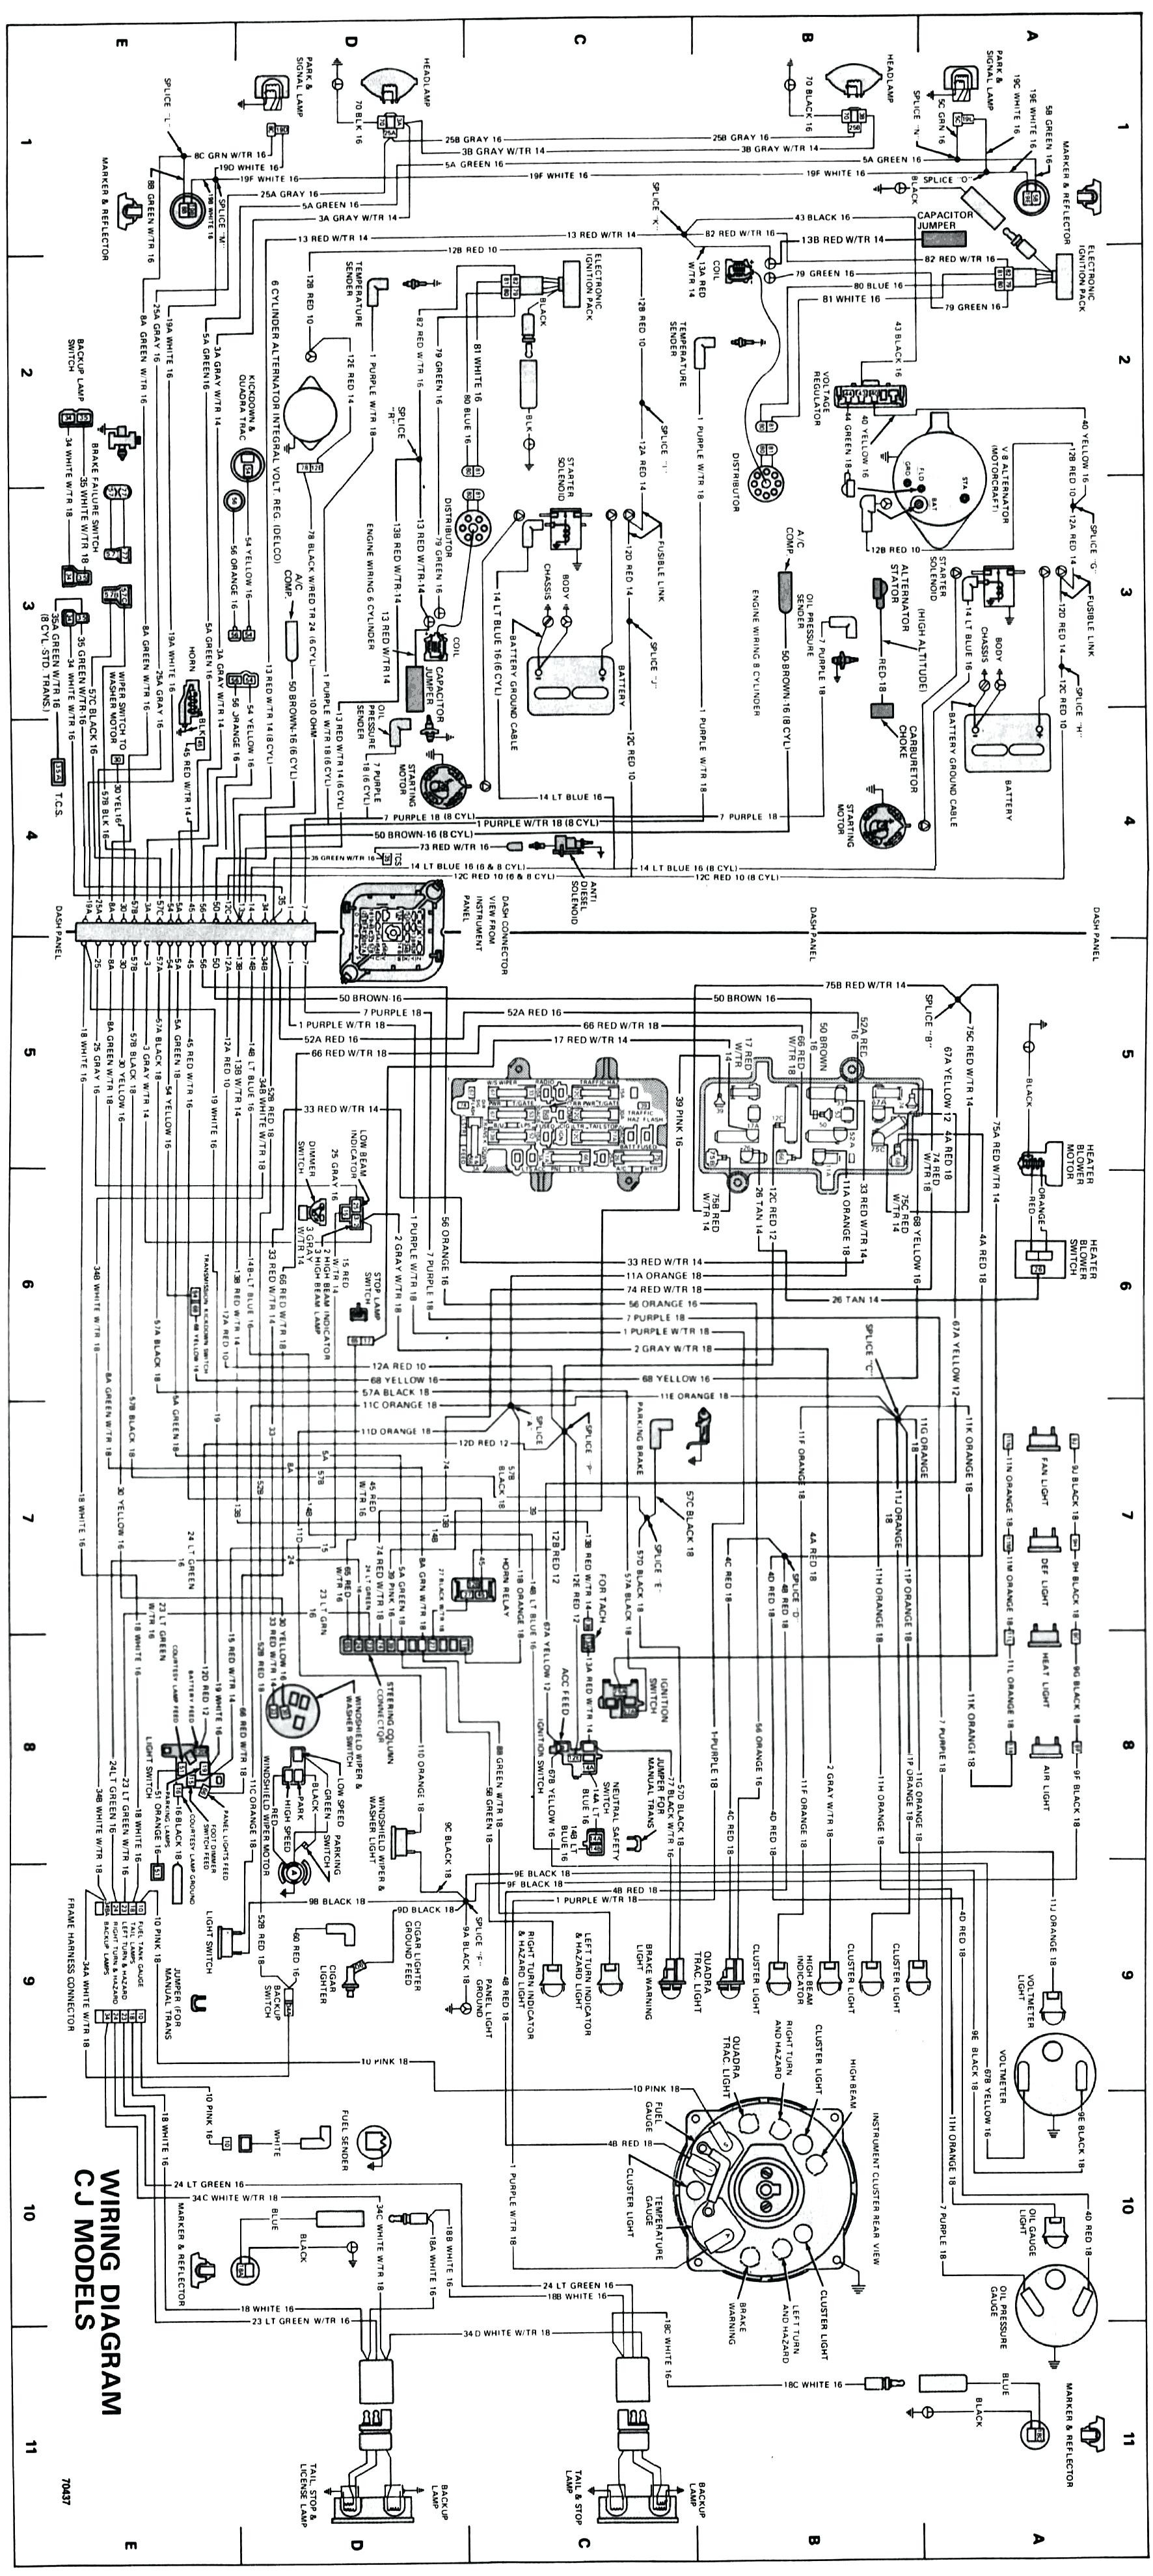 1982 Jeep Cj5 Wiring Diagram - WIRE Center •